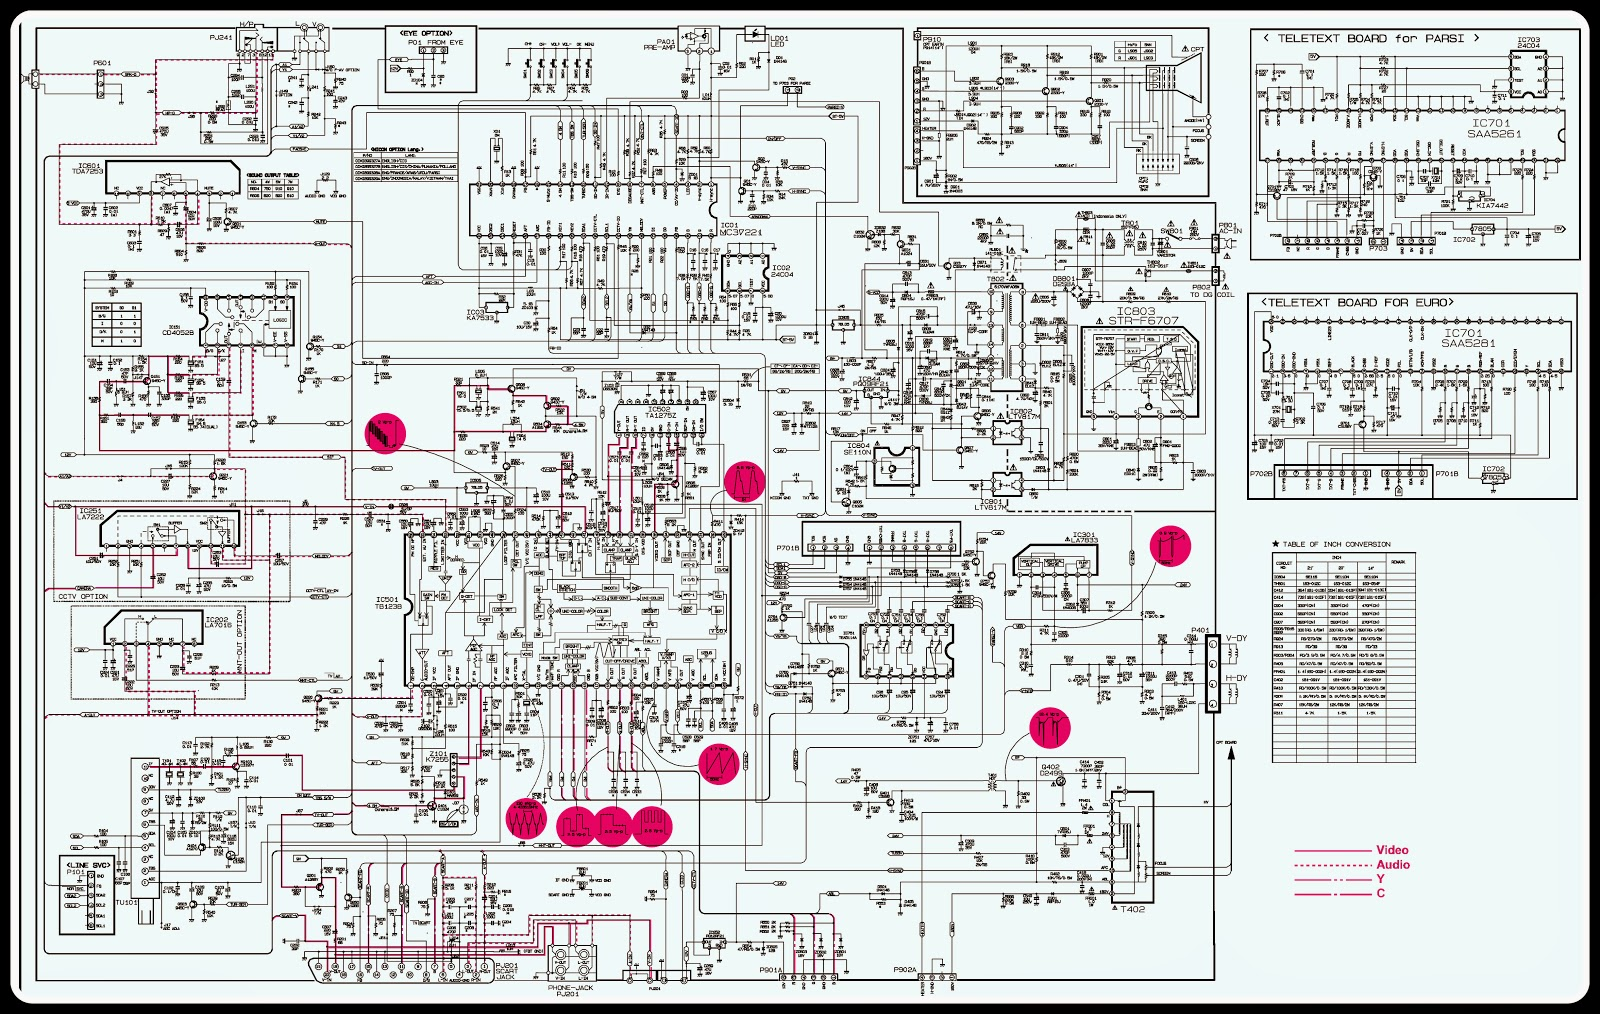 Lg Crt Tv Schematic Diagram Pdf Periodic Diagrams Science Power Supply Smps Circuit Using Buz91 Learn Basic Electronics